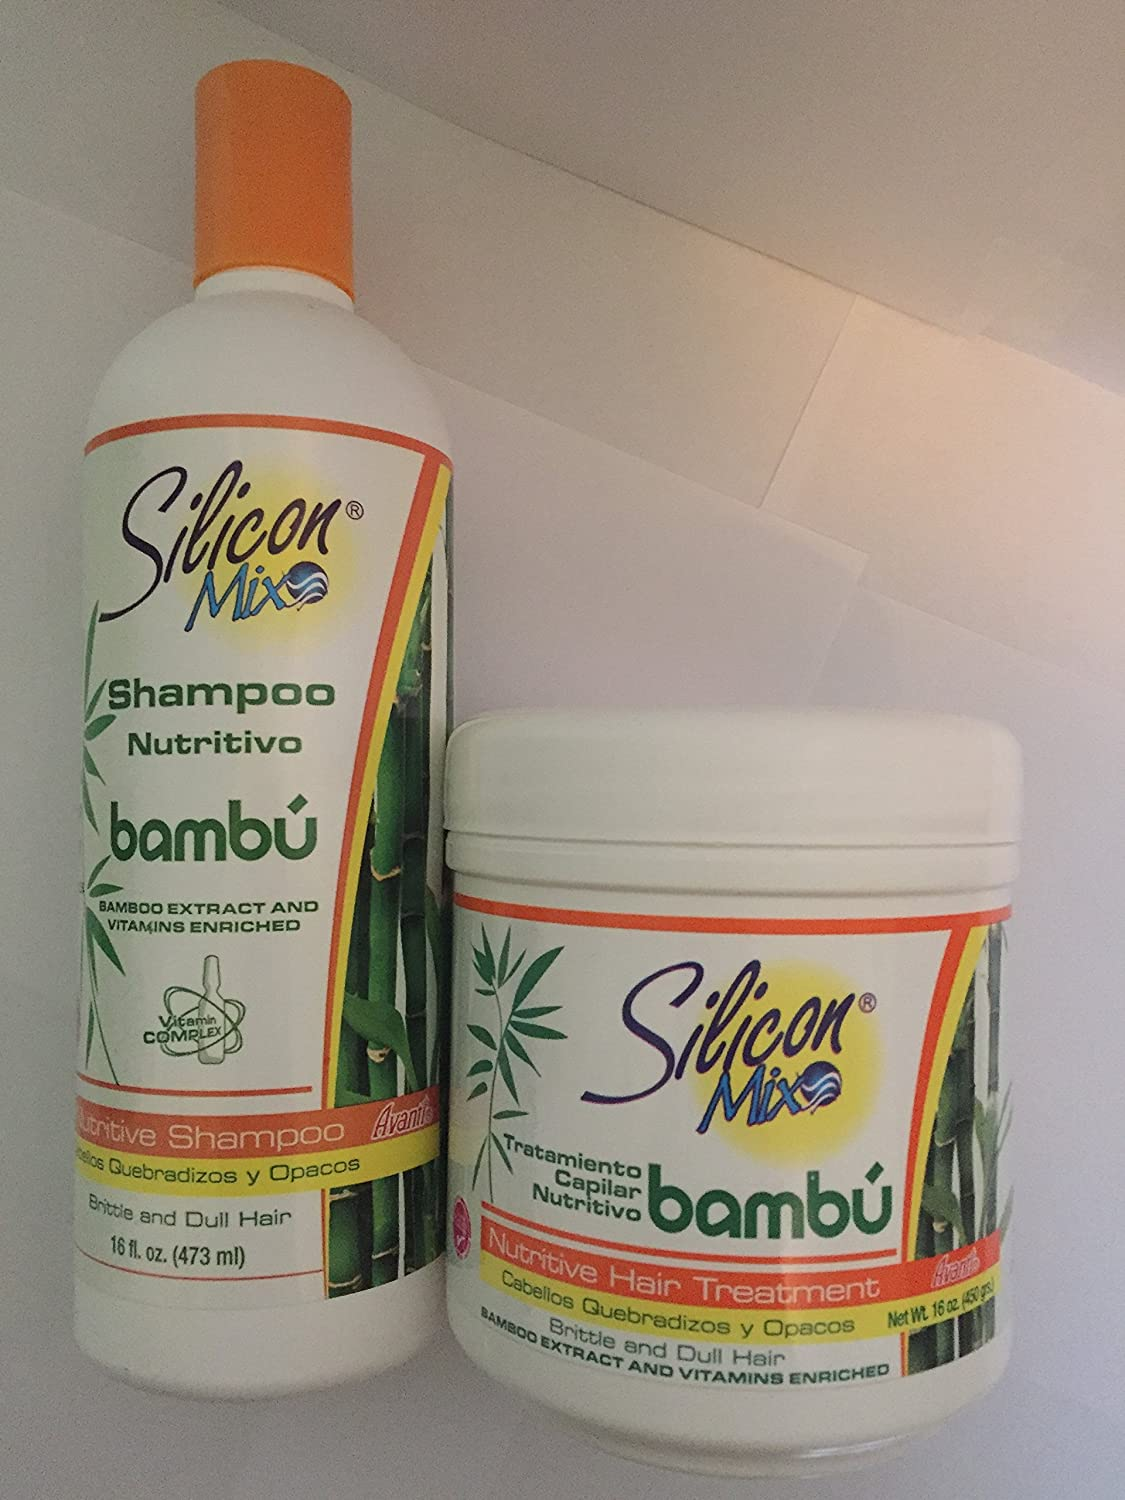 Silicon MIx Bamboo Shampoo & Treatment